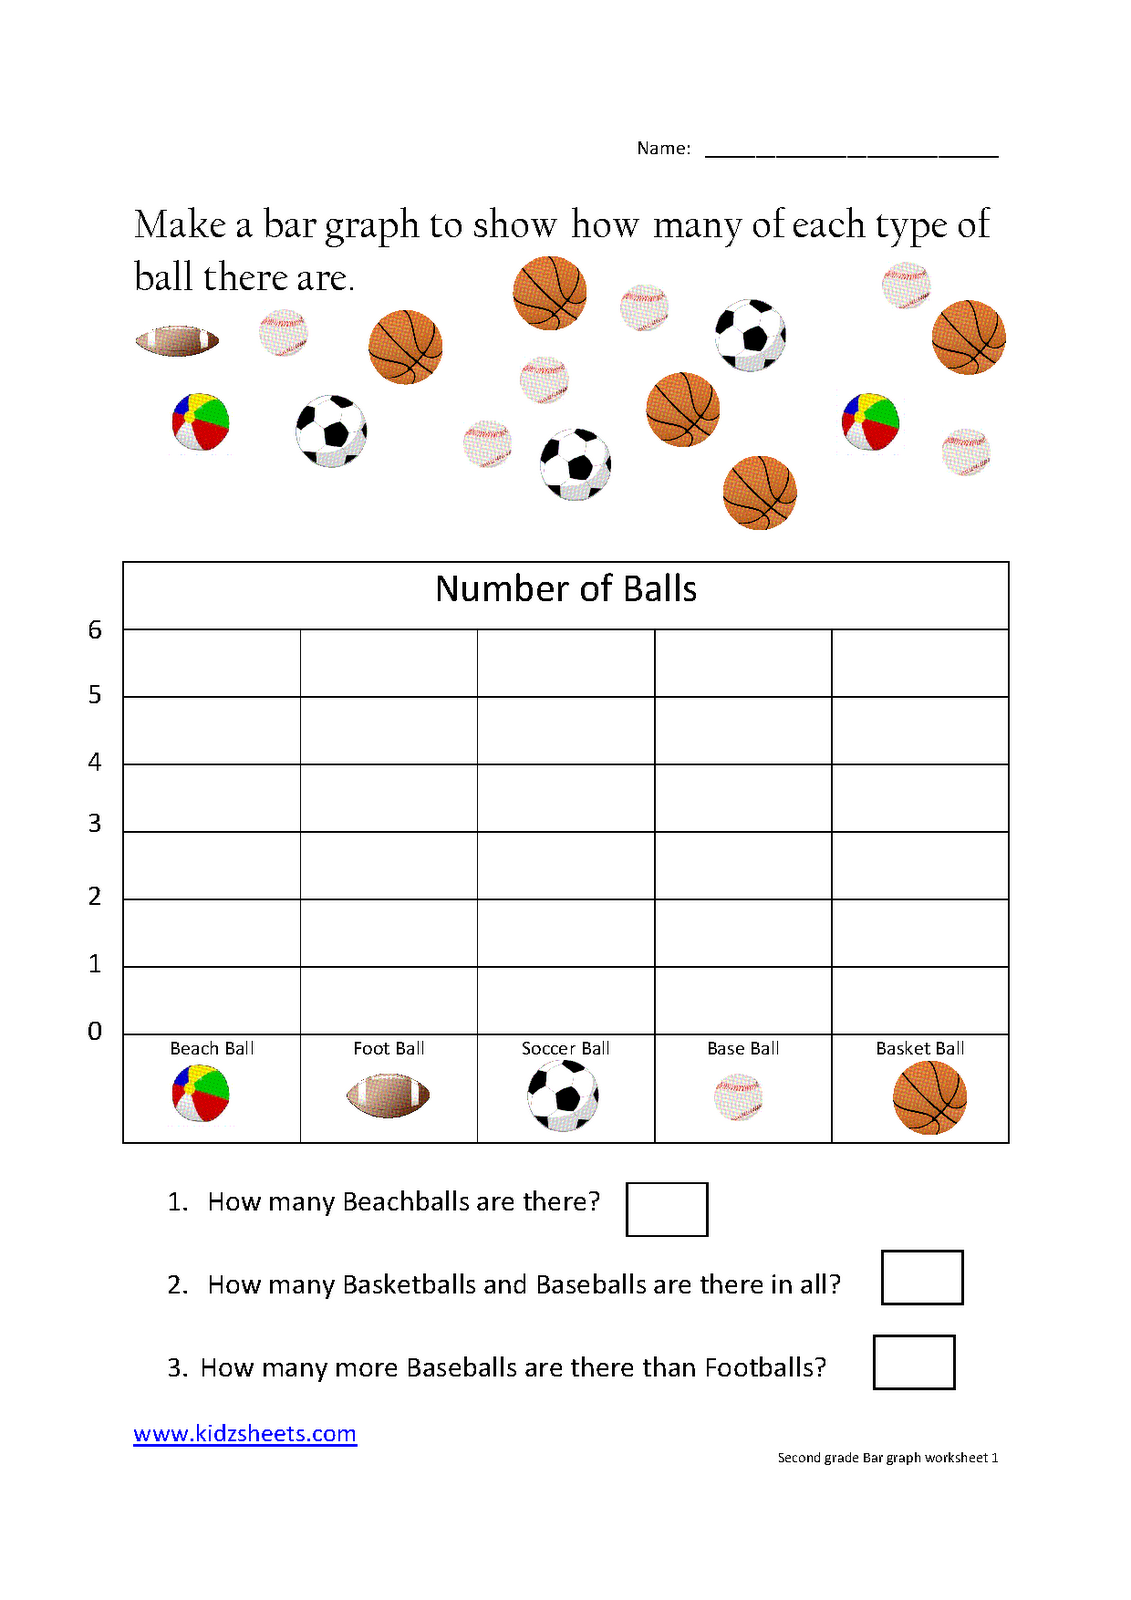 Kidz Worksheets Second Grade Bar Graph Worksheet1 – Second Grade Worksheets Free